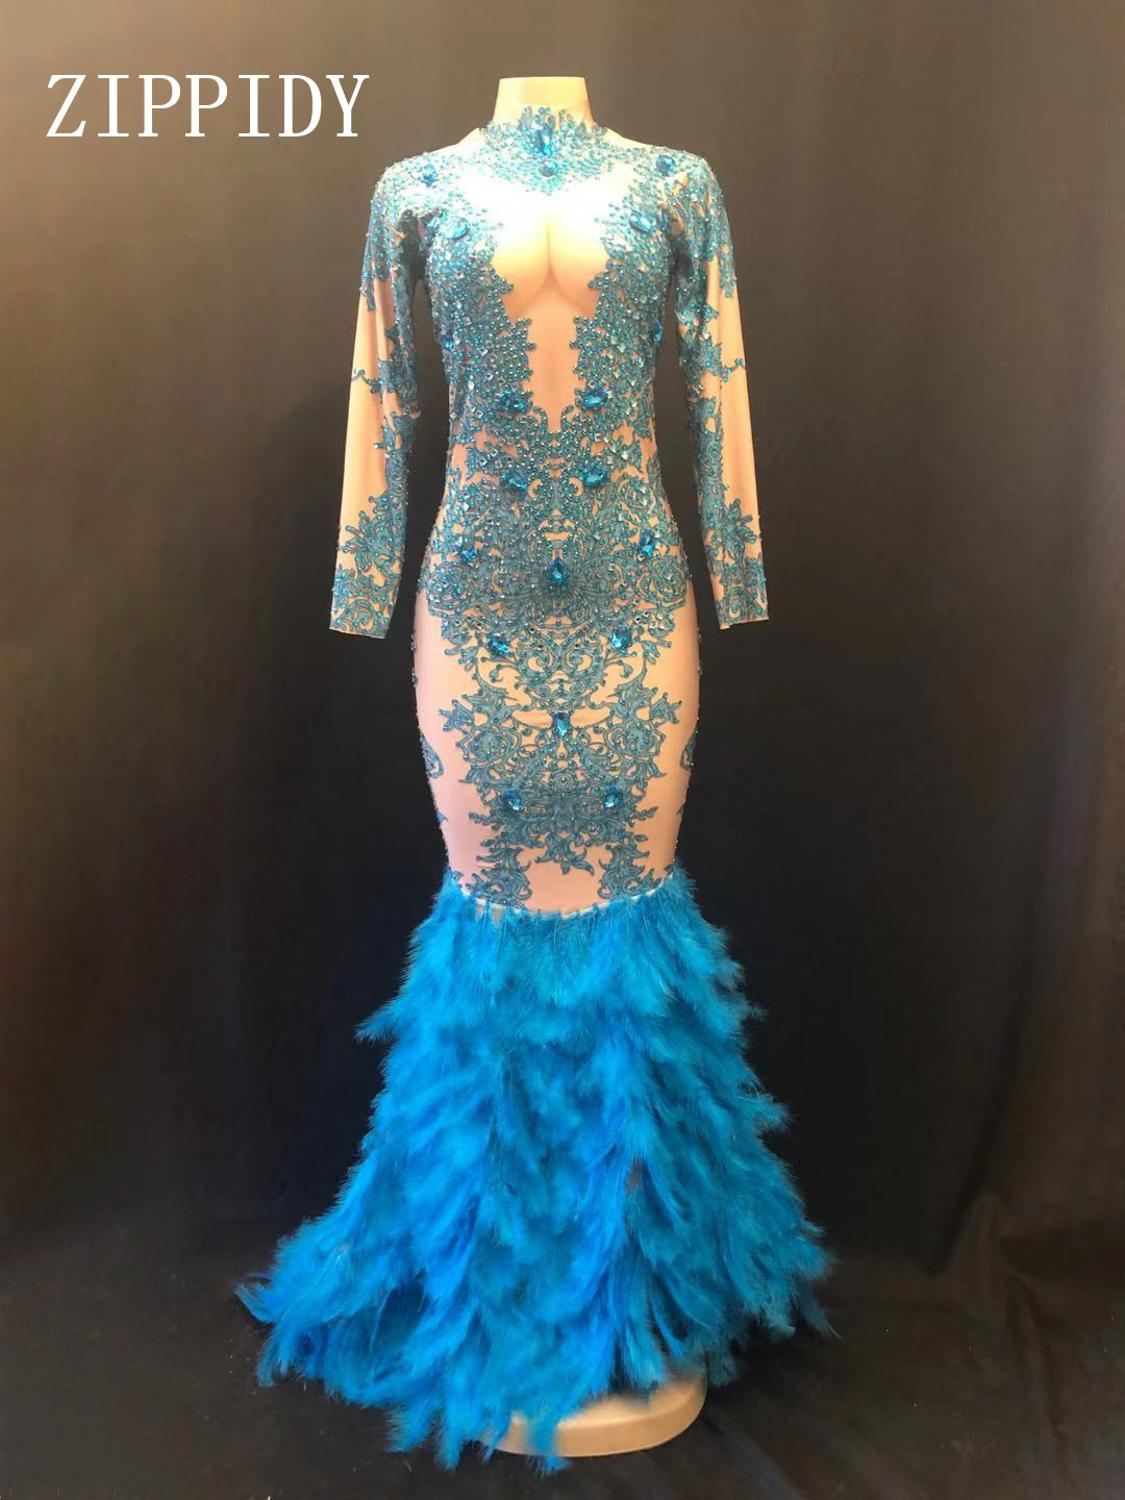 Blue Feather Rhinestones Stretch Dress Stage Outfit Women Birthday Celebrate Dresses Singer DS DJ Stage Evening Clothing